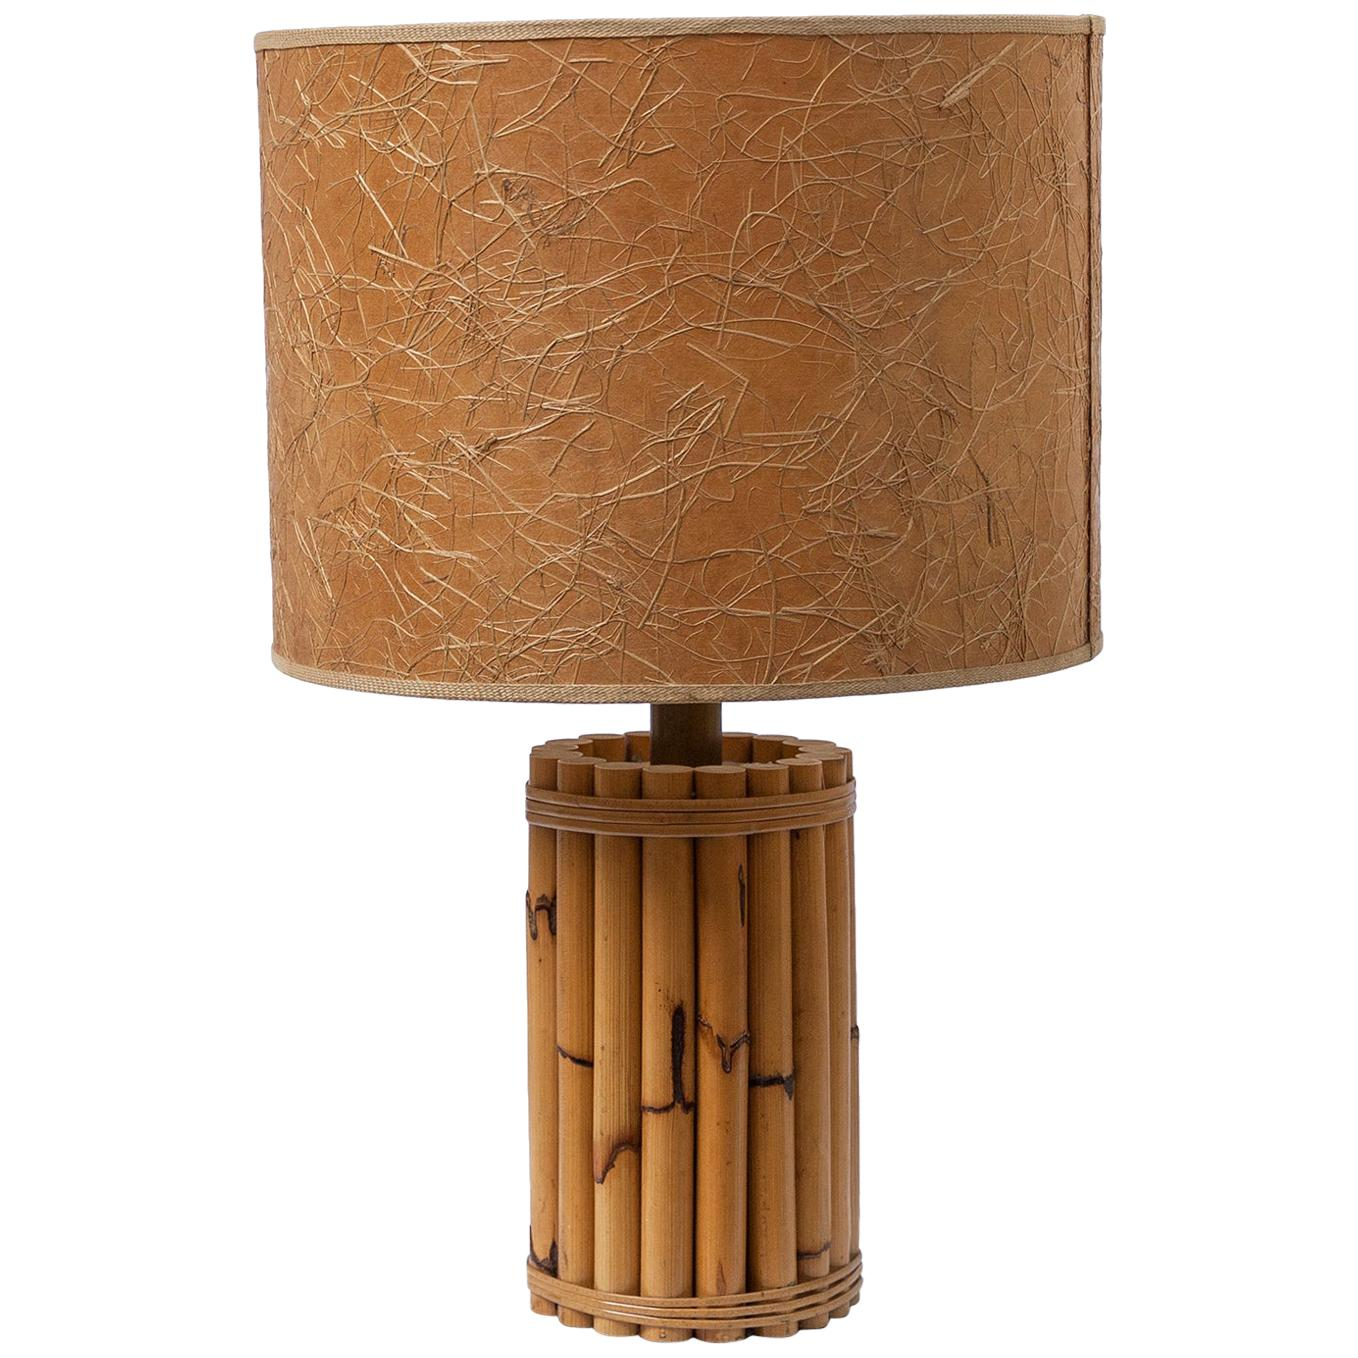 Bamboo Table Lamp Paper Shade, France, 1950s